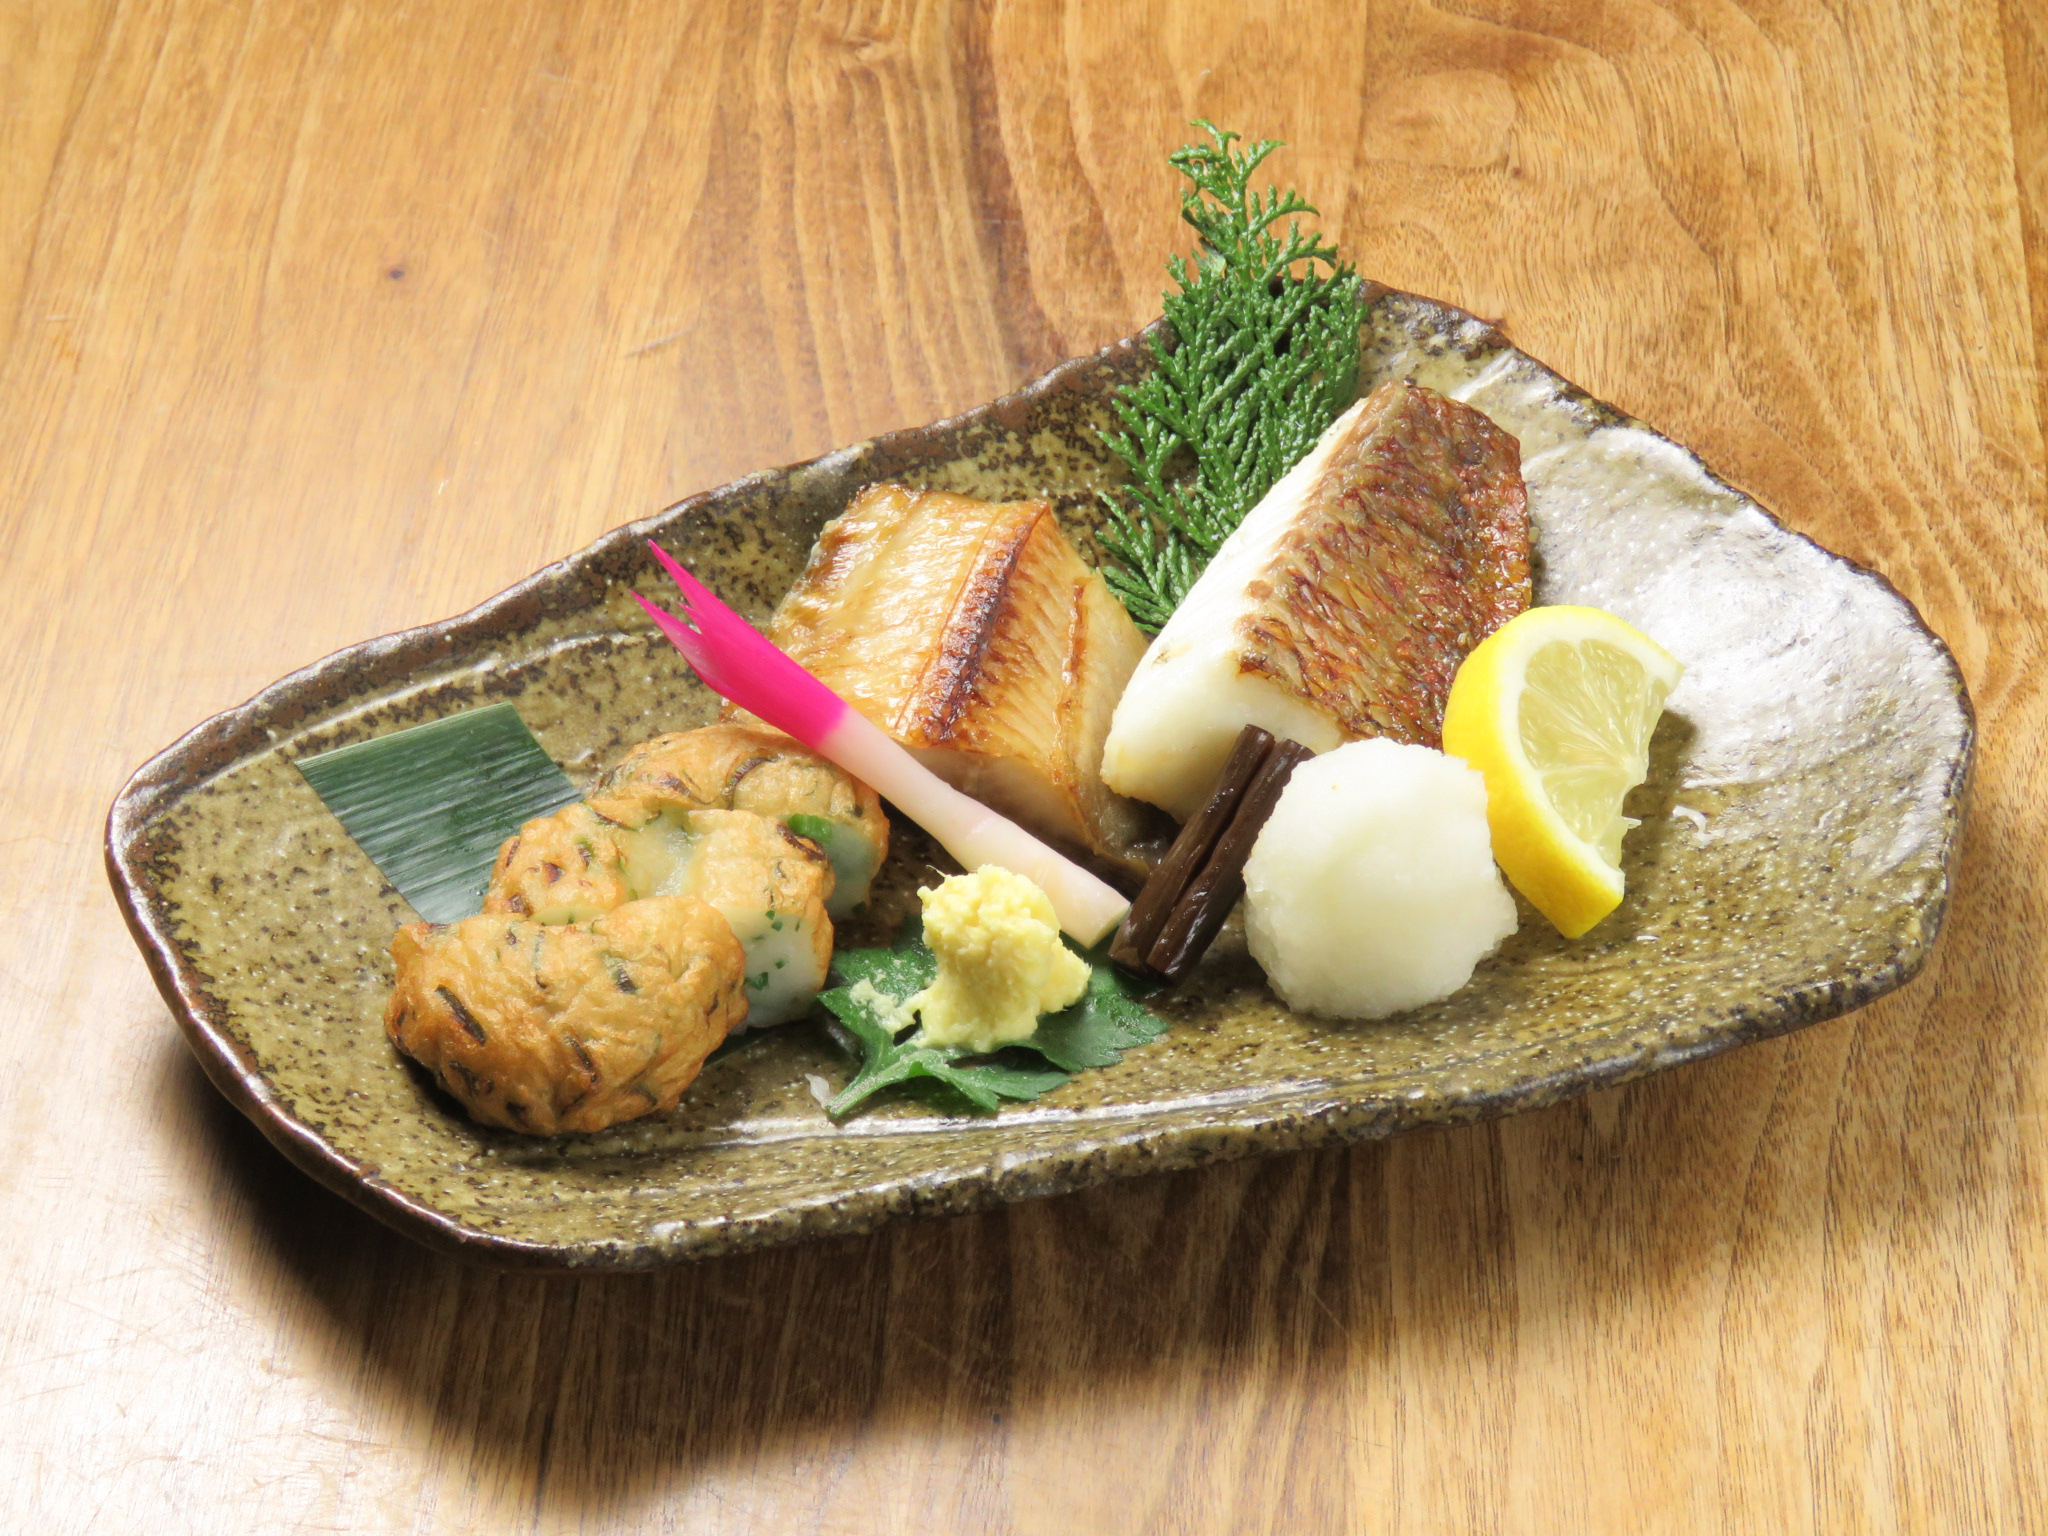 Charcoal grilled assorted fish platter